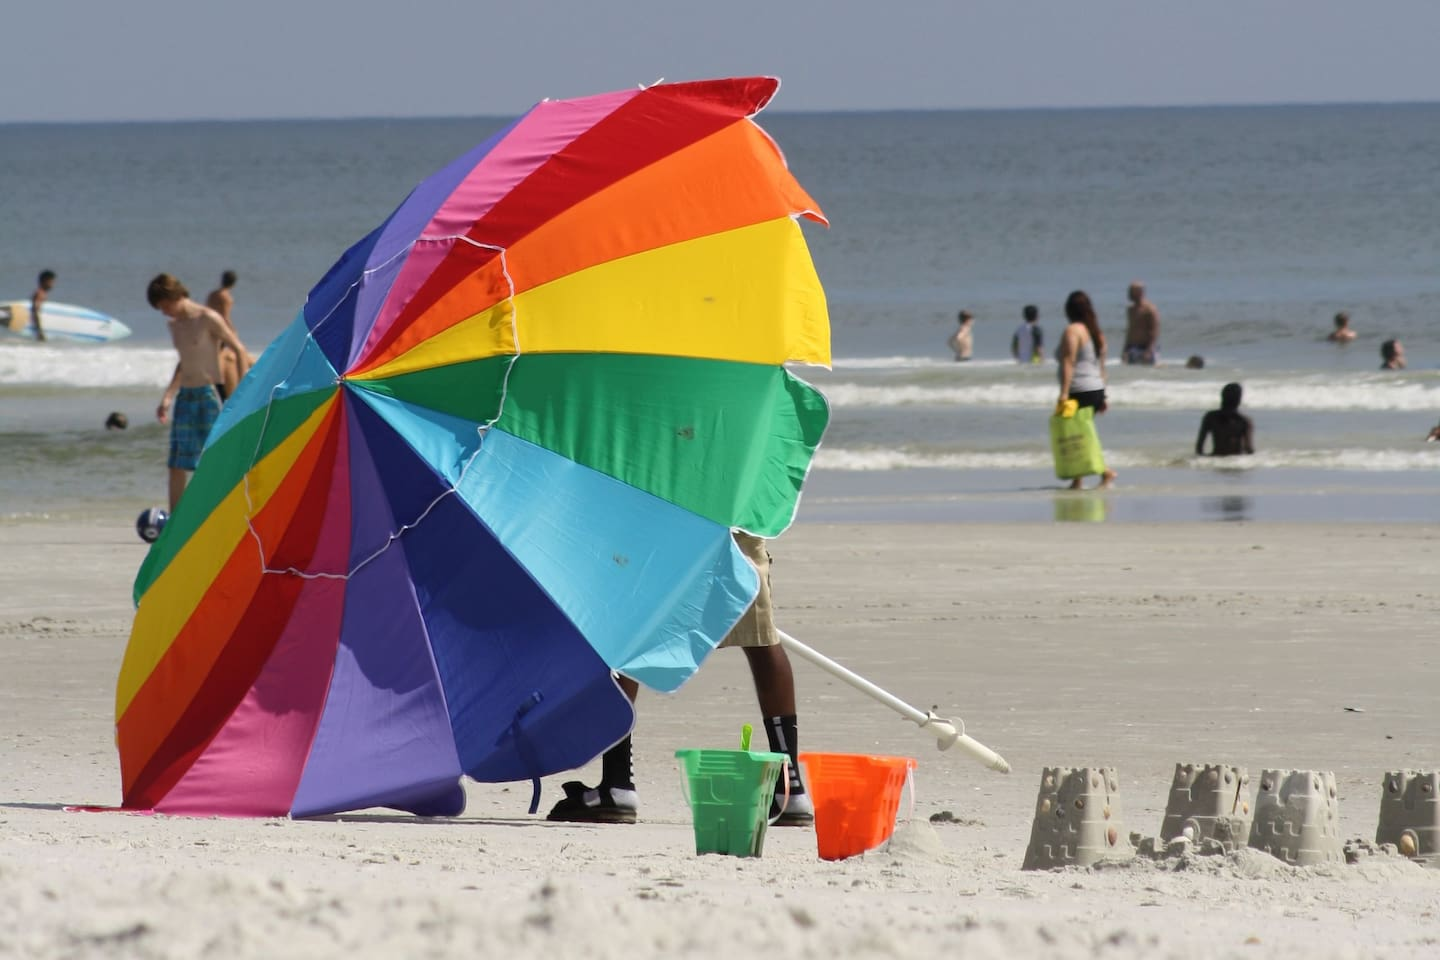 Jacksonville beach is only a straight 6.2 mile drive.